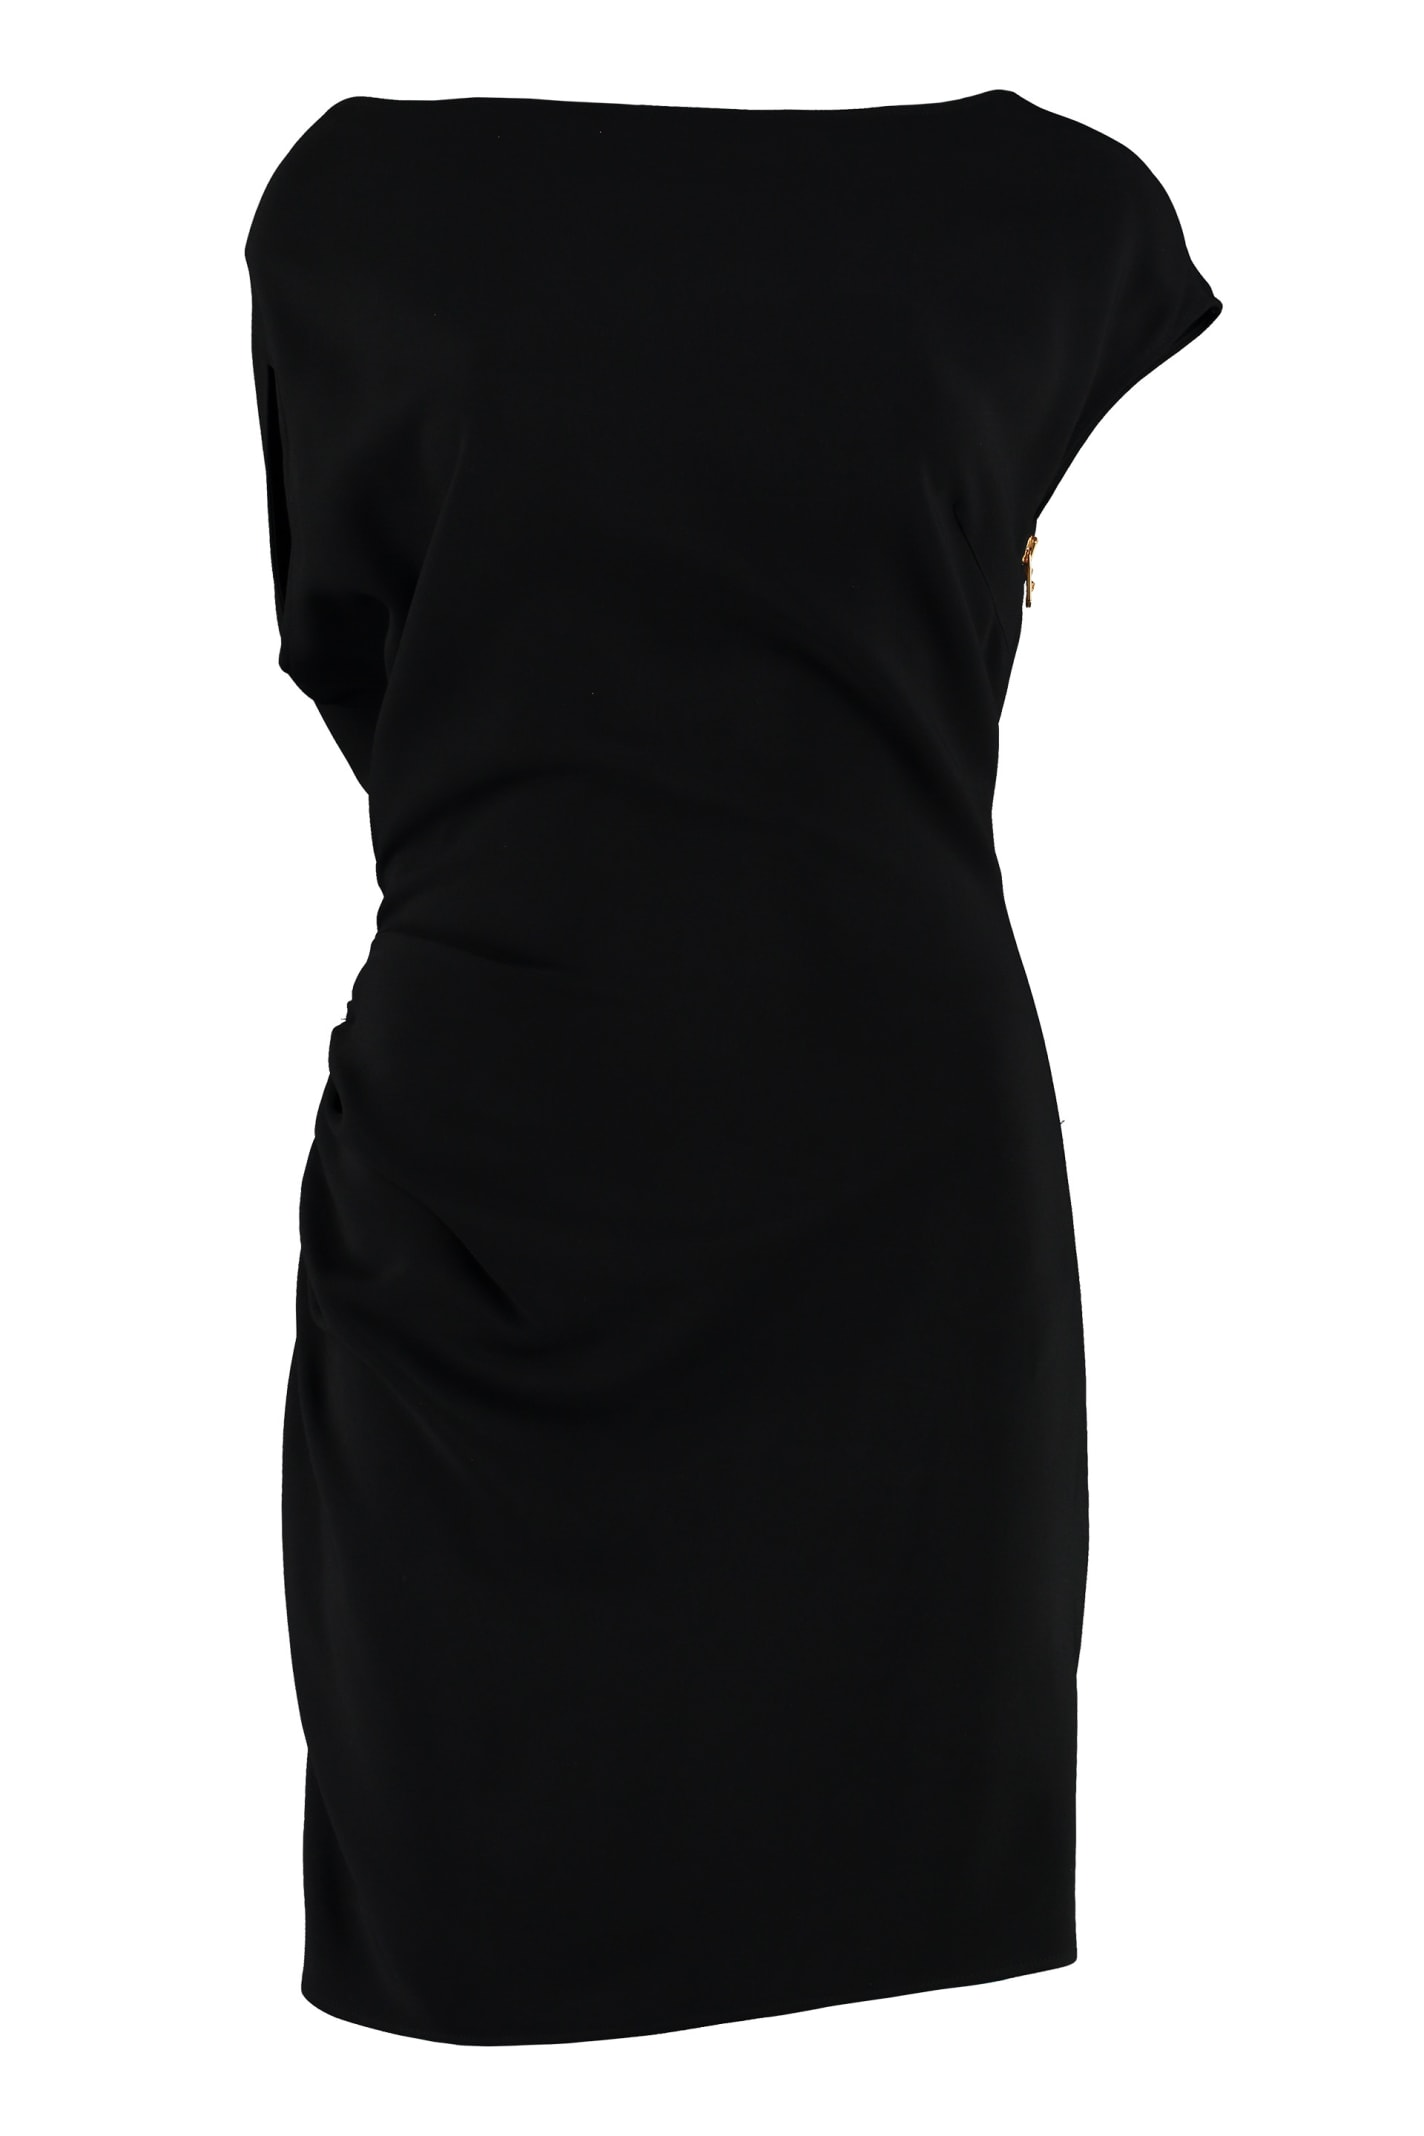 Versace Draped Sheath Dress